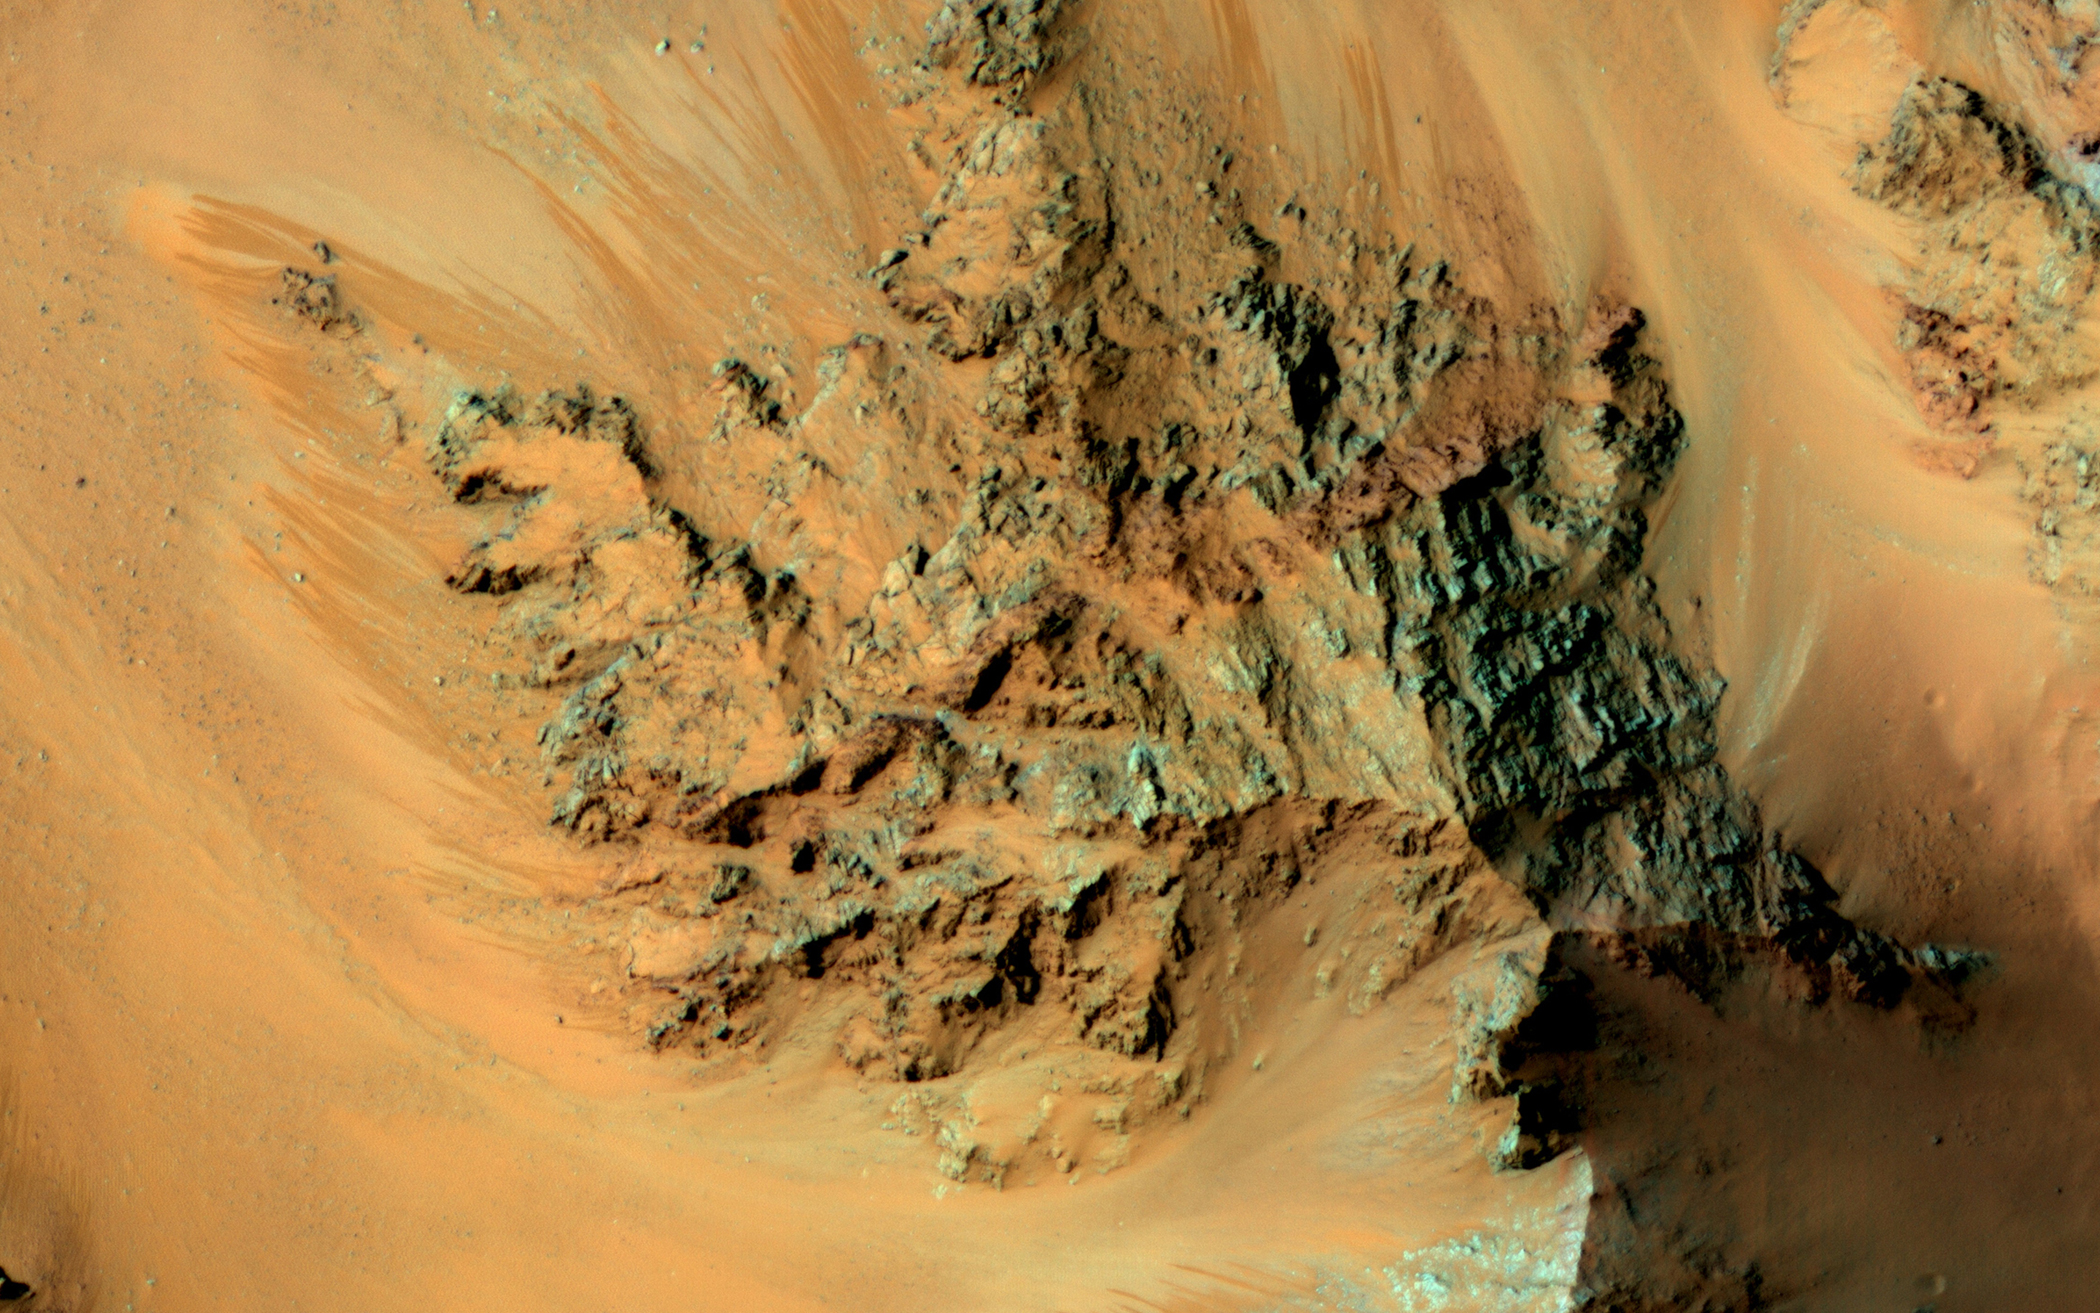 This RSL is one of the most active sites known on Mars in the central peaks of Hale Crater, acquired on Feb. 20, 2015.